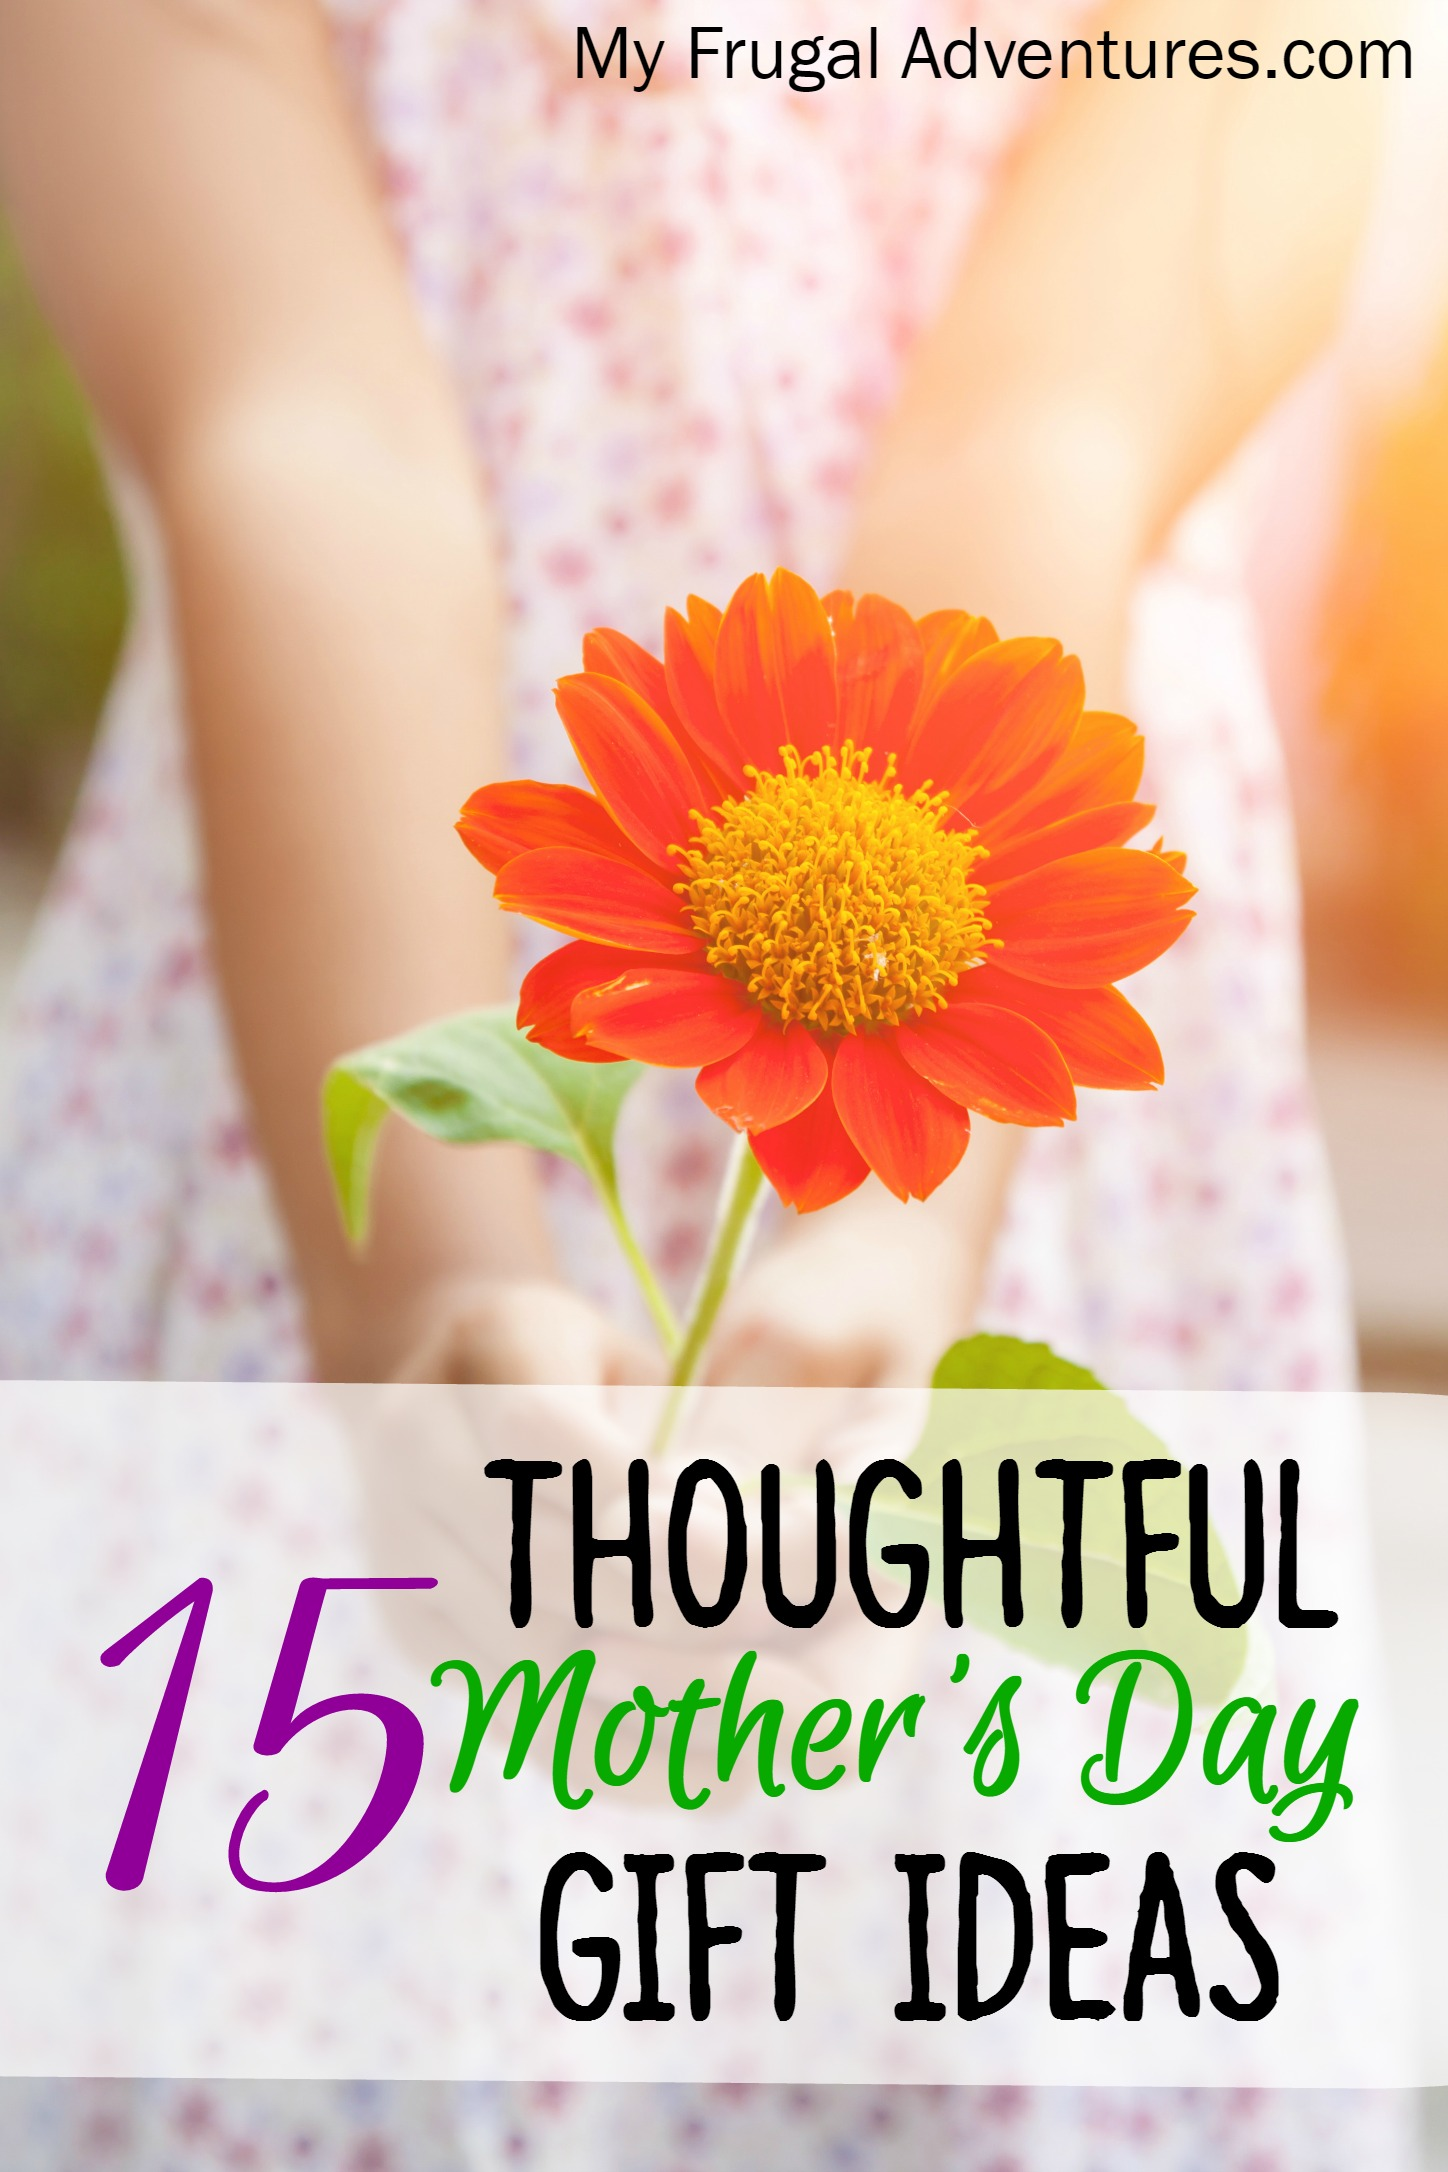 15 Thoughtful Motheru0027s Day Gift Ideas & 15 Thoughtful Motheru0027s Day Gift Ideas - My Frugal Adventures